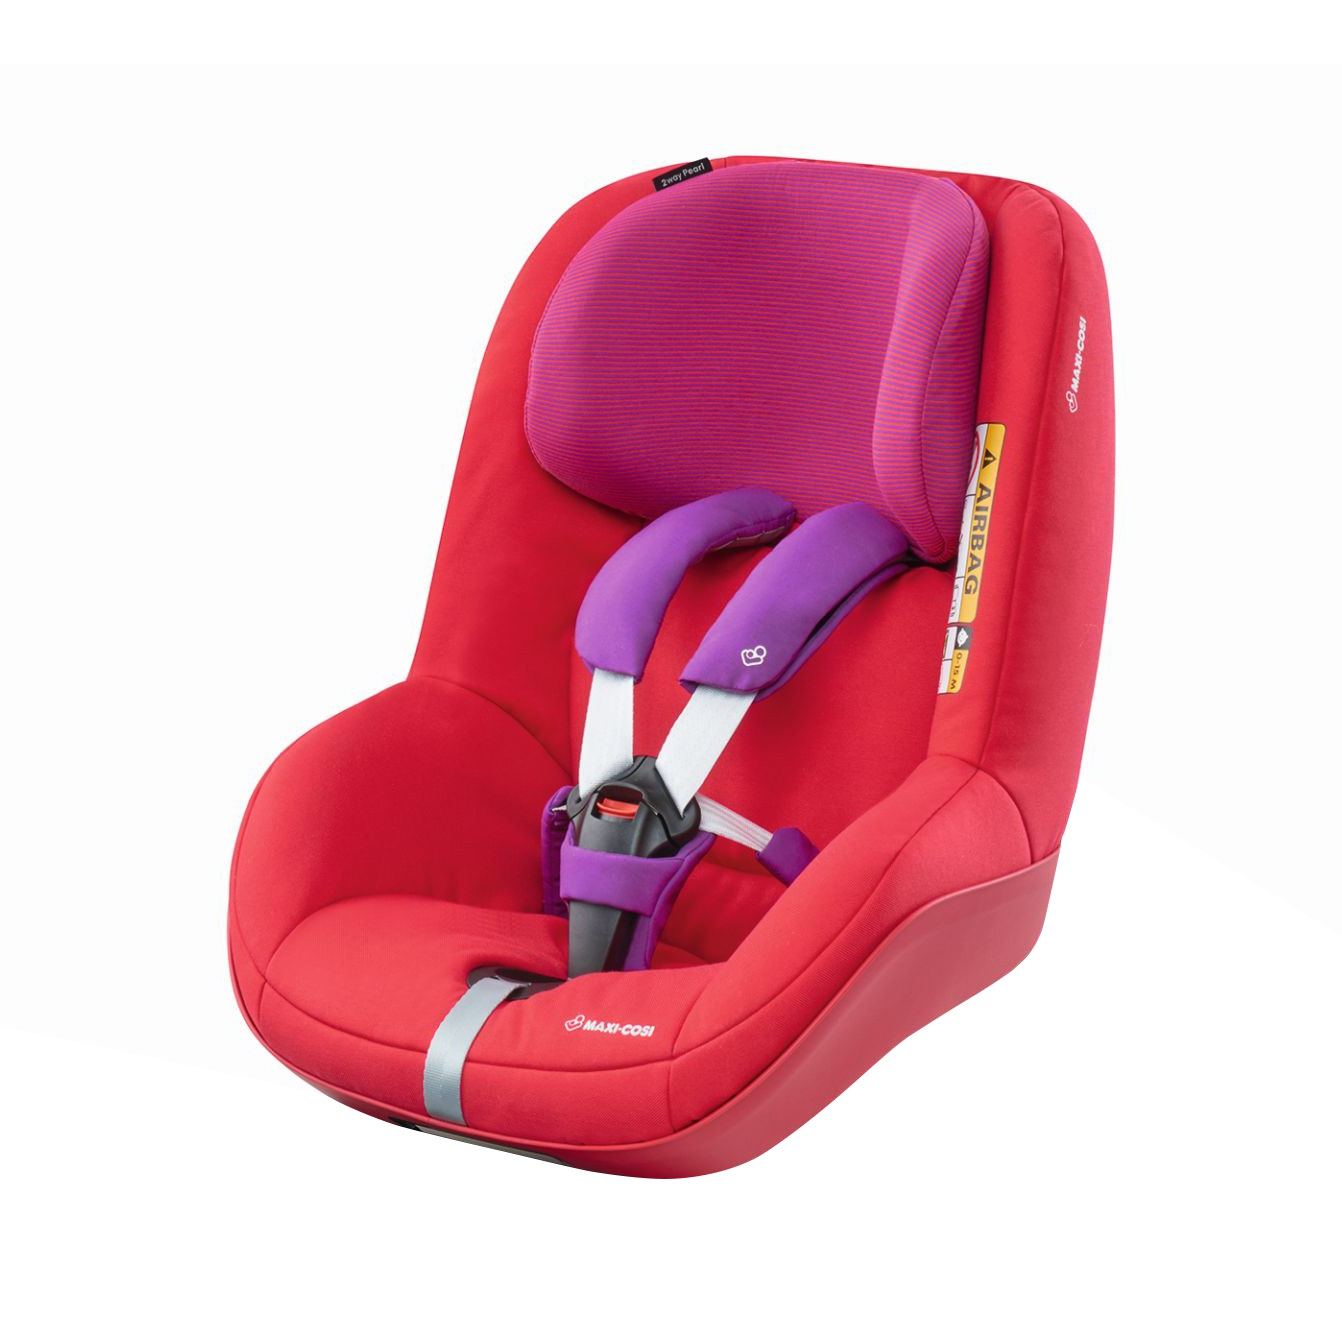 Si ge d enfant maxi cosi 2way pearl 2017 red orchid for Siege enfant